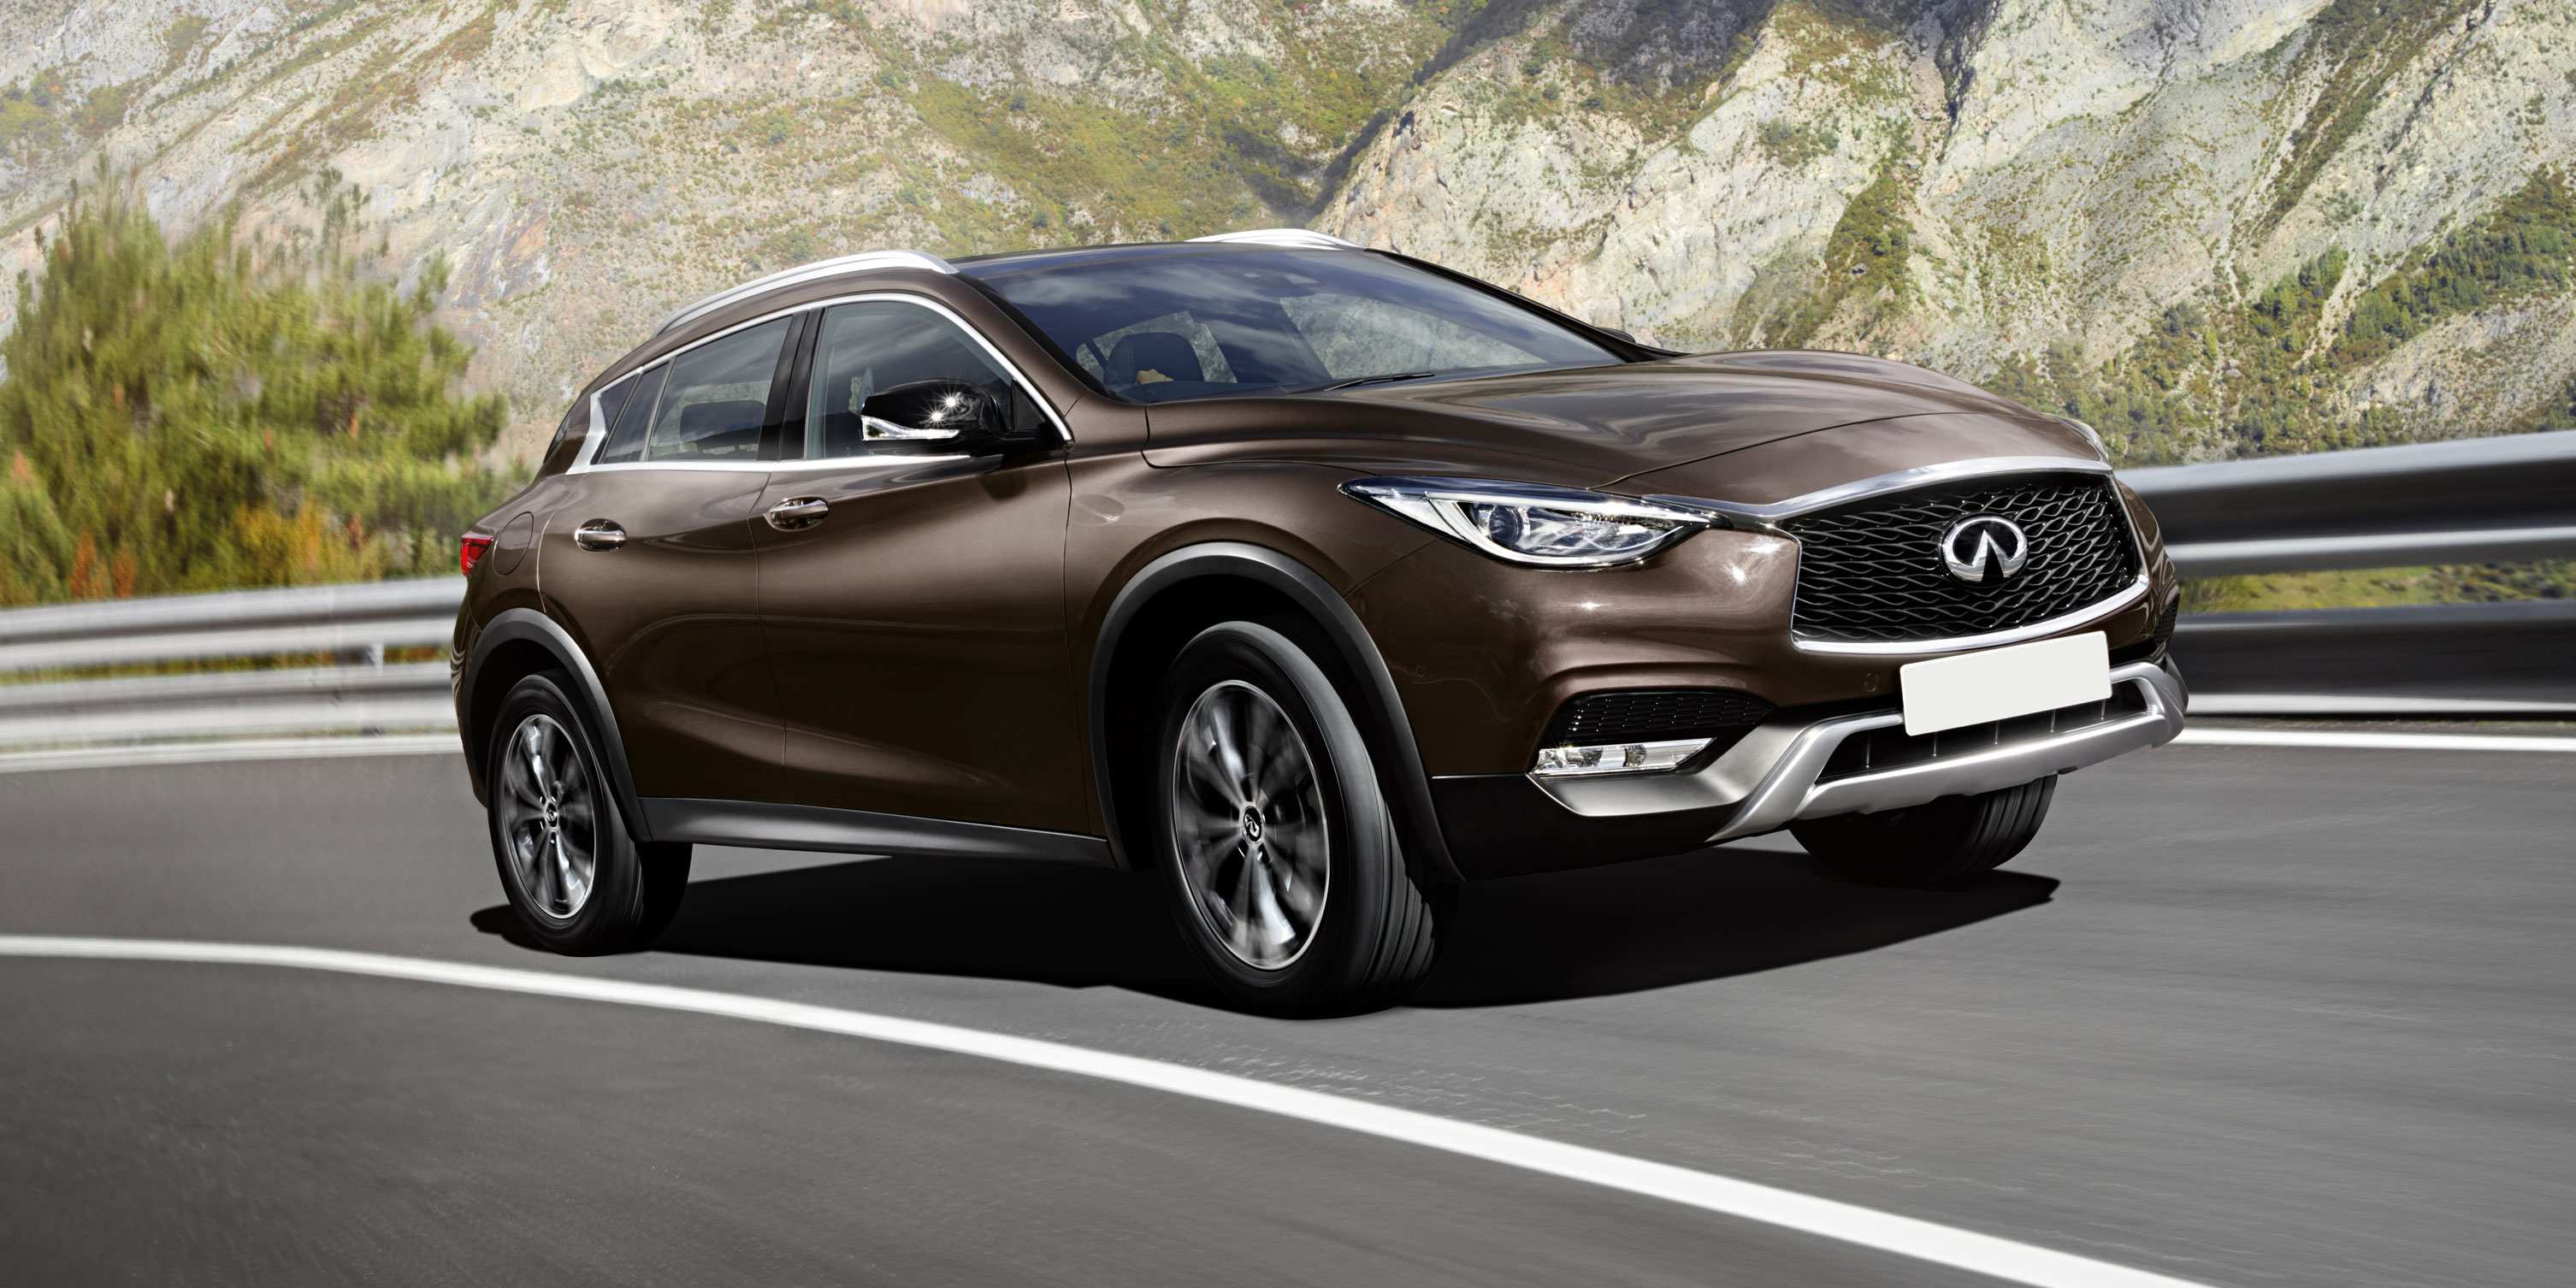 57 The Best 2020 Infiniti Electric Redesign and Review